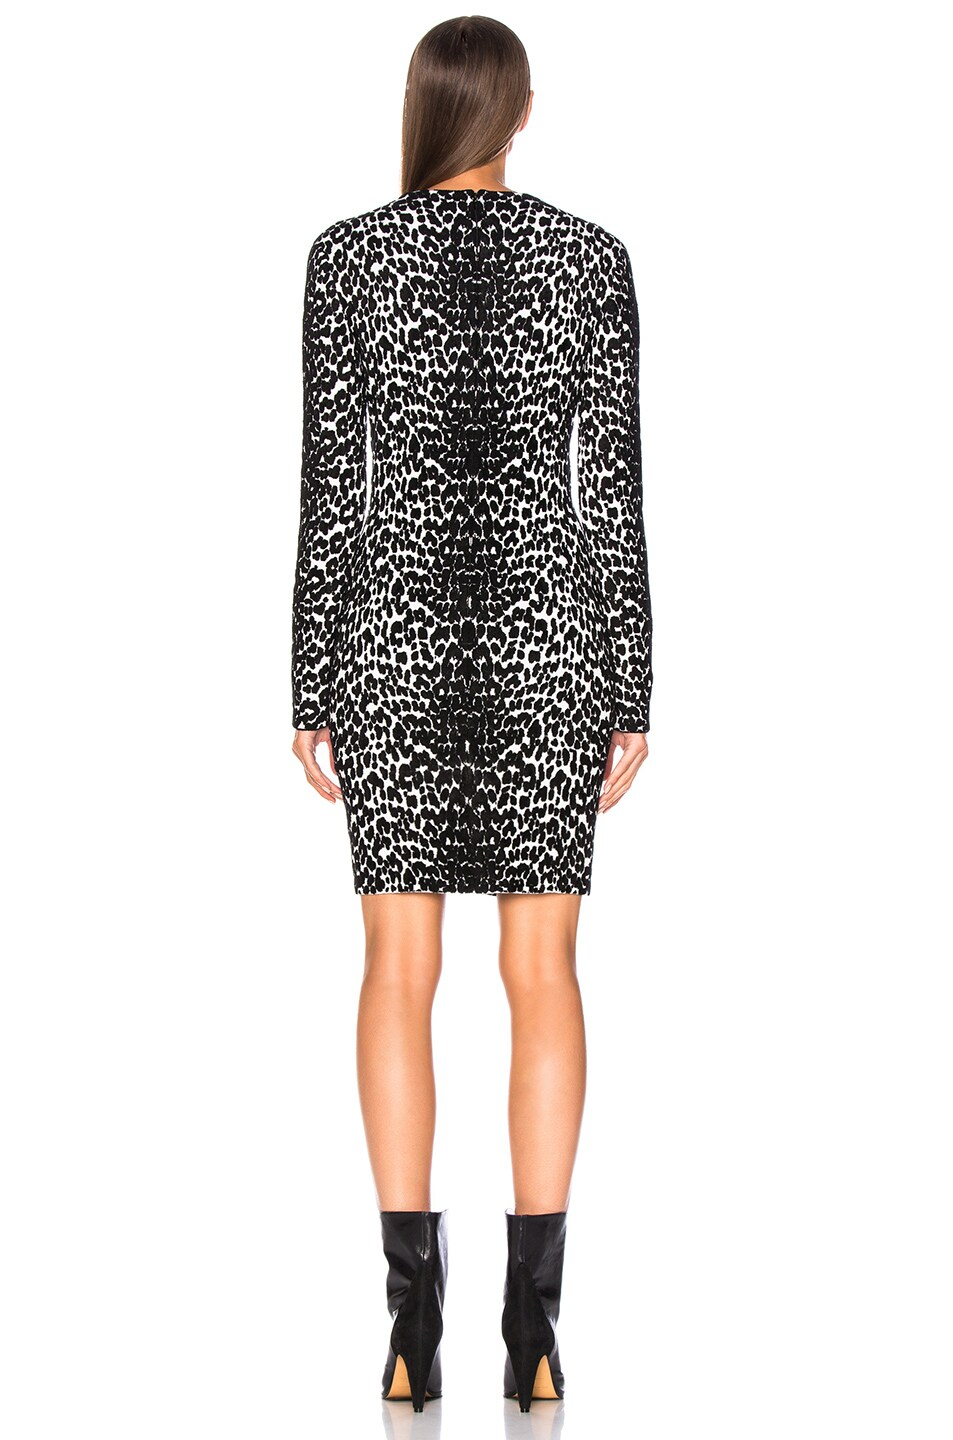 Image 4 of Givenchy Leopard Jacquard Sweater Dress in Black & White